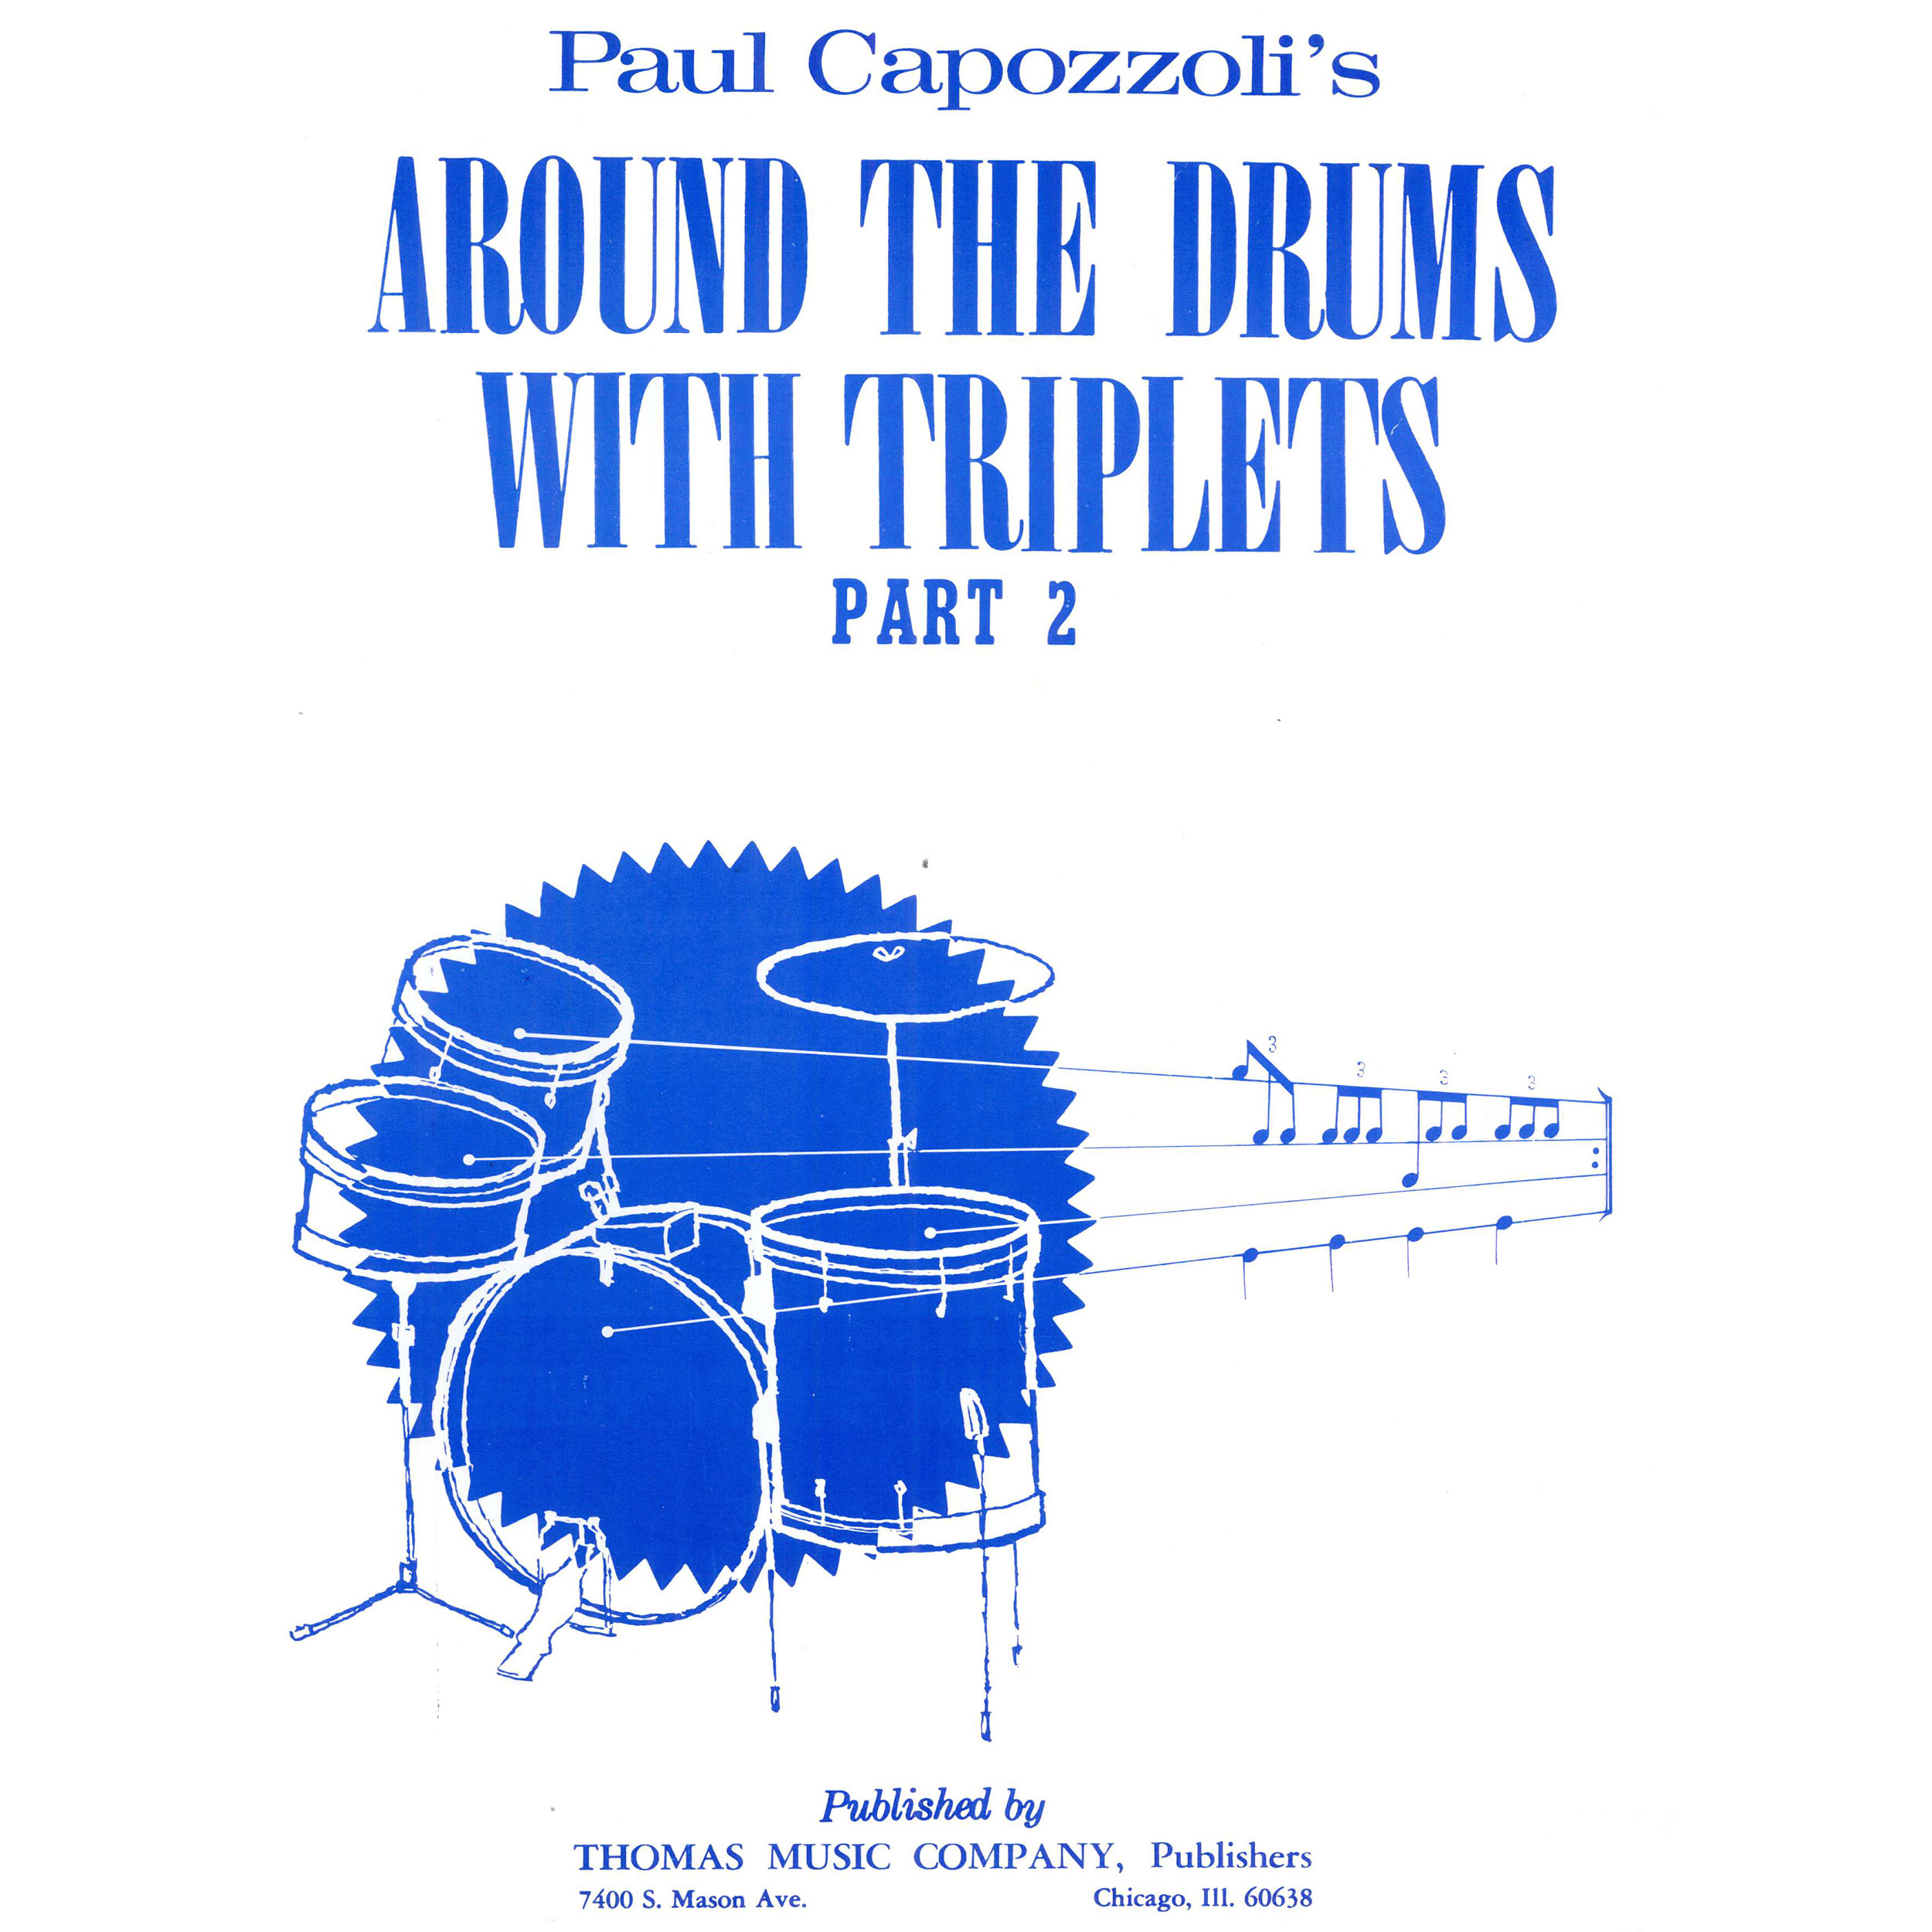 Around The Drums With Triplets - Part 2 by Paul Capozzoli